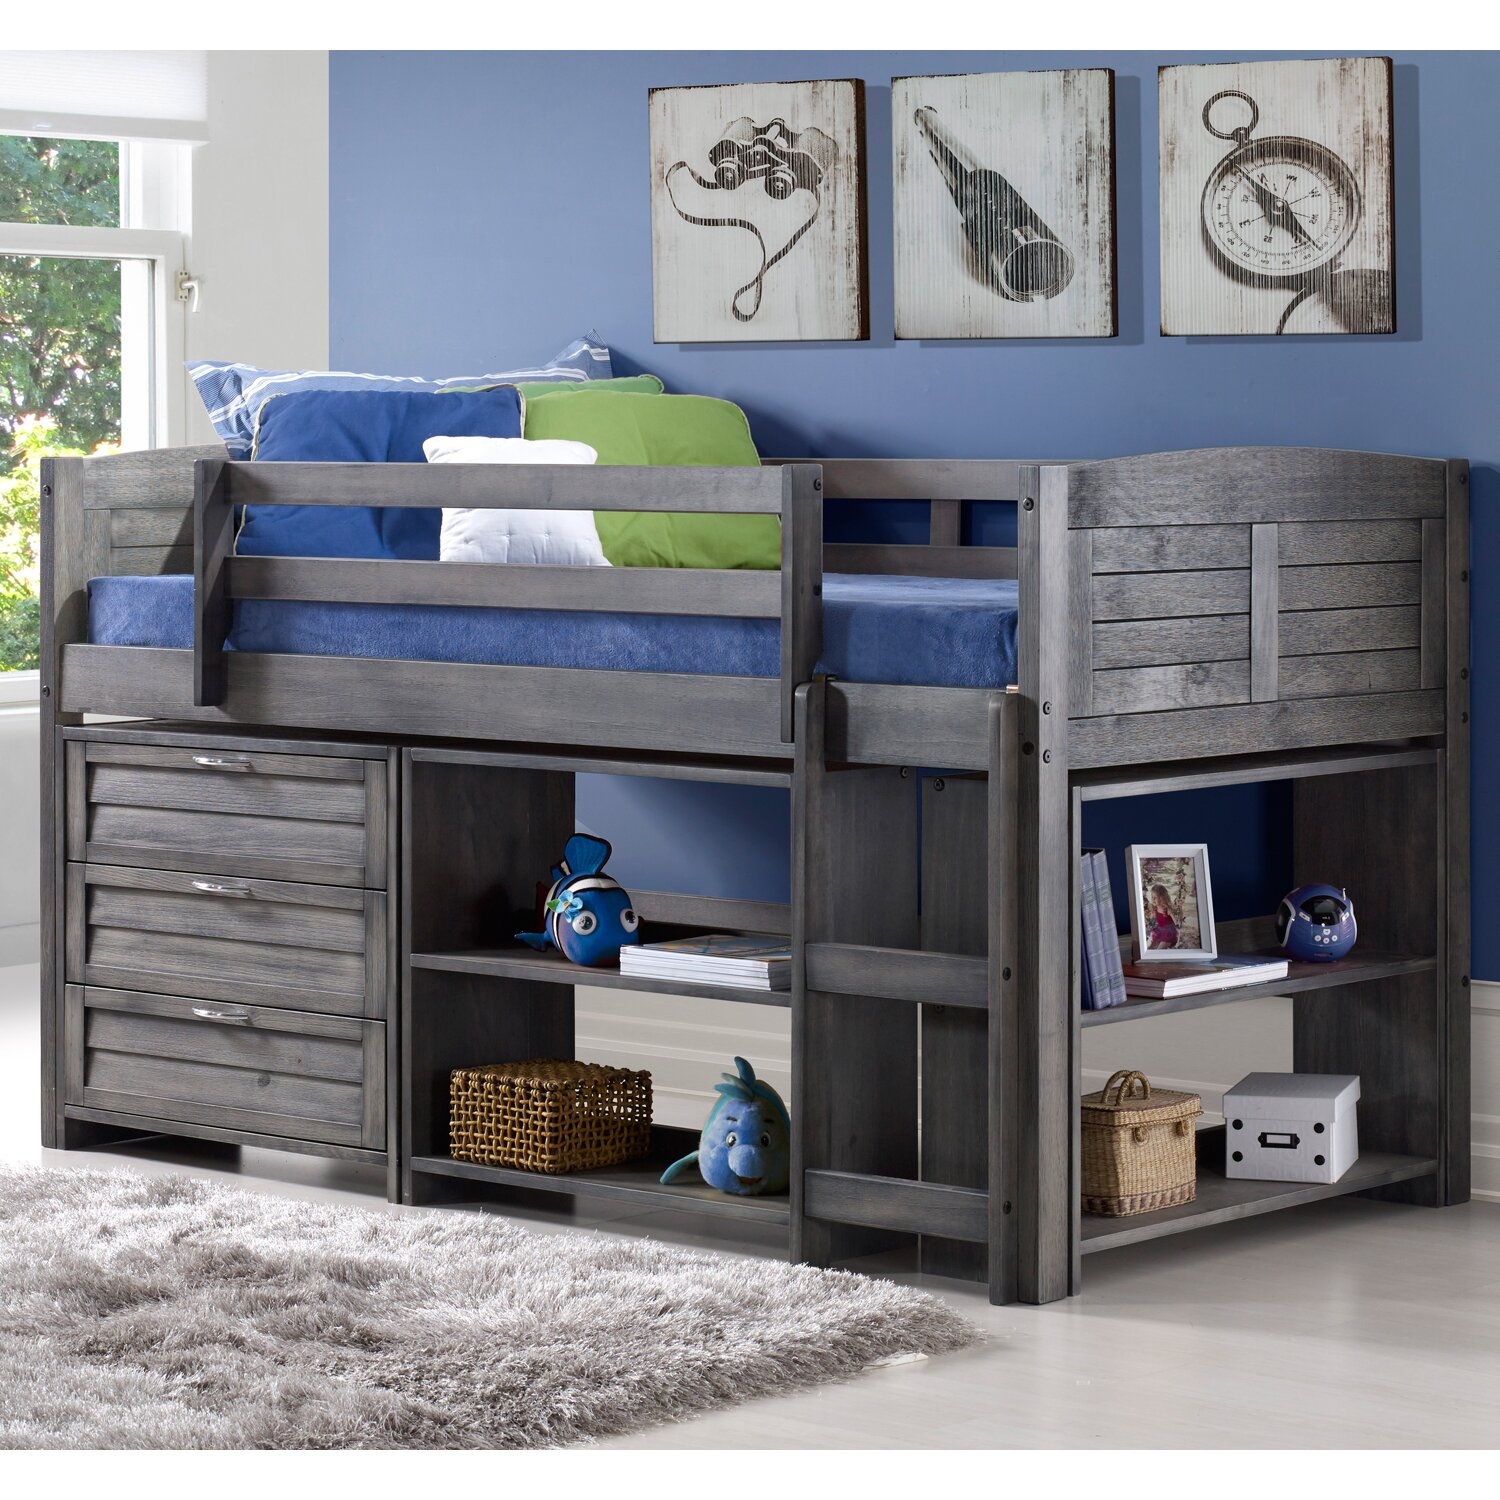 Donco Kids Louver Twin Low Loft Bed with Storage